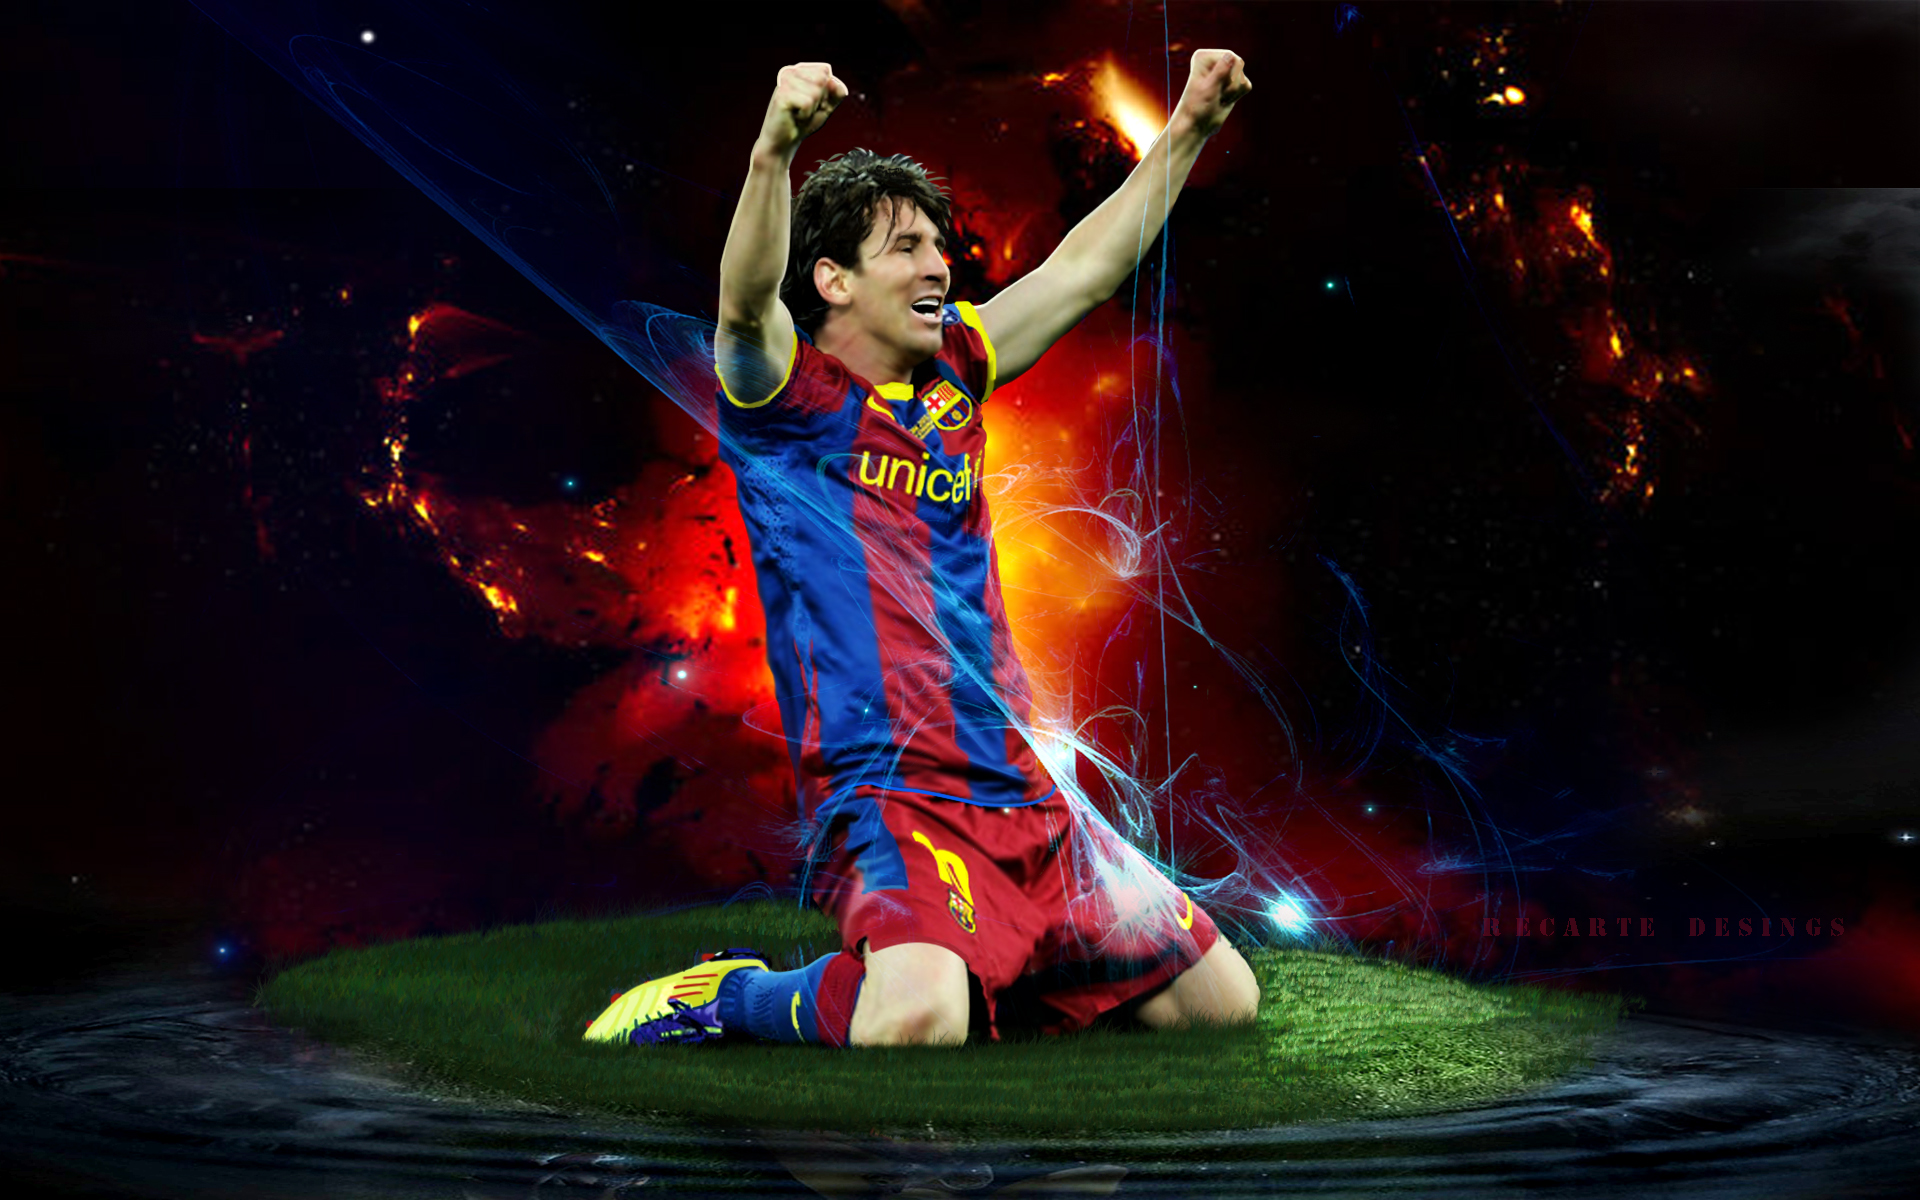 Messi Wallpaper unicef